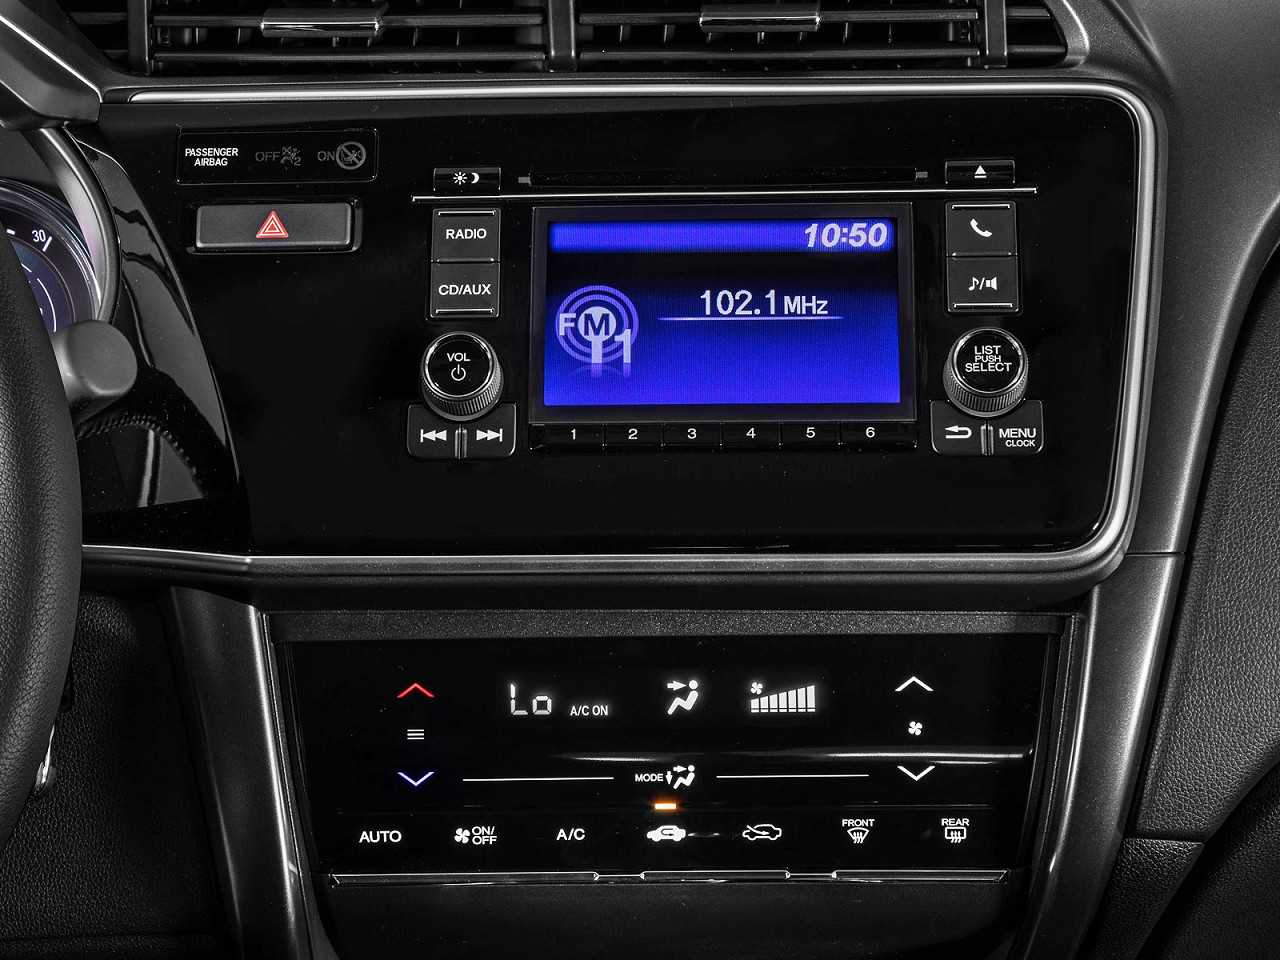 HondaCity 2018 - console central